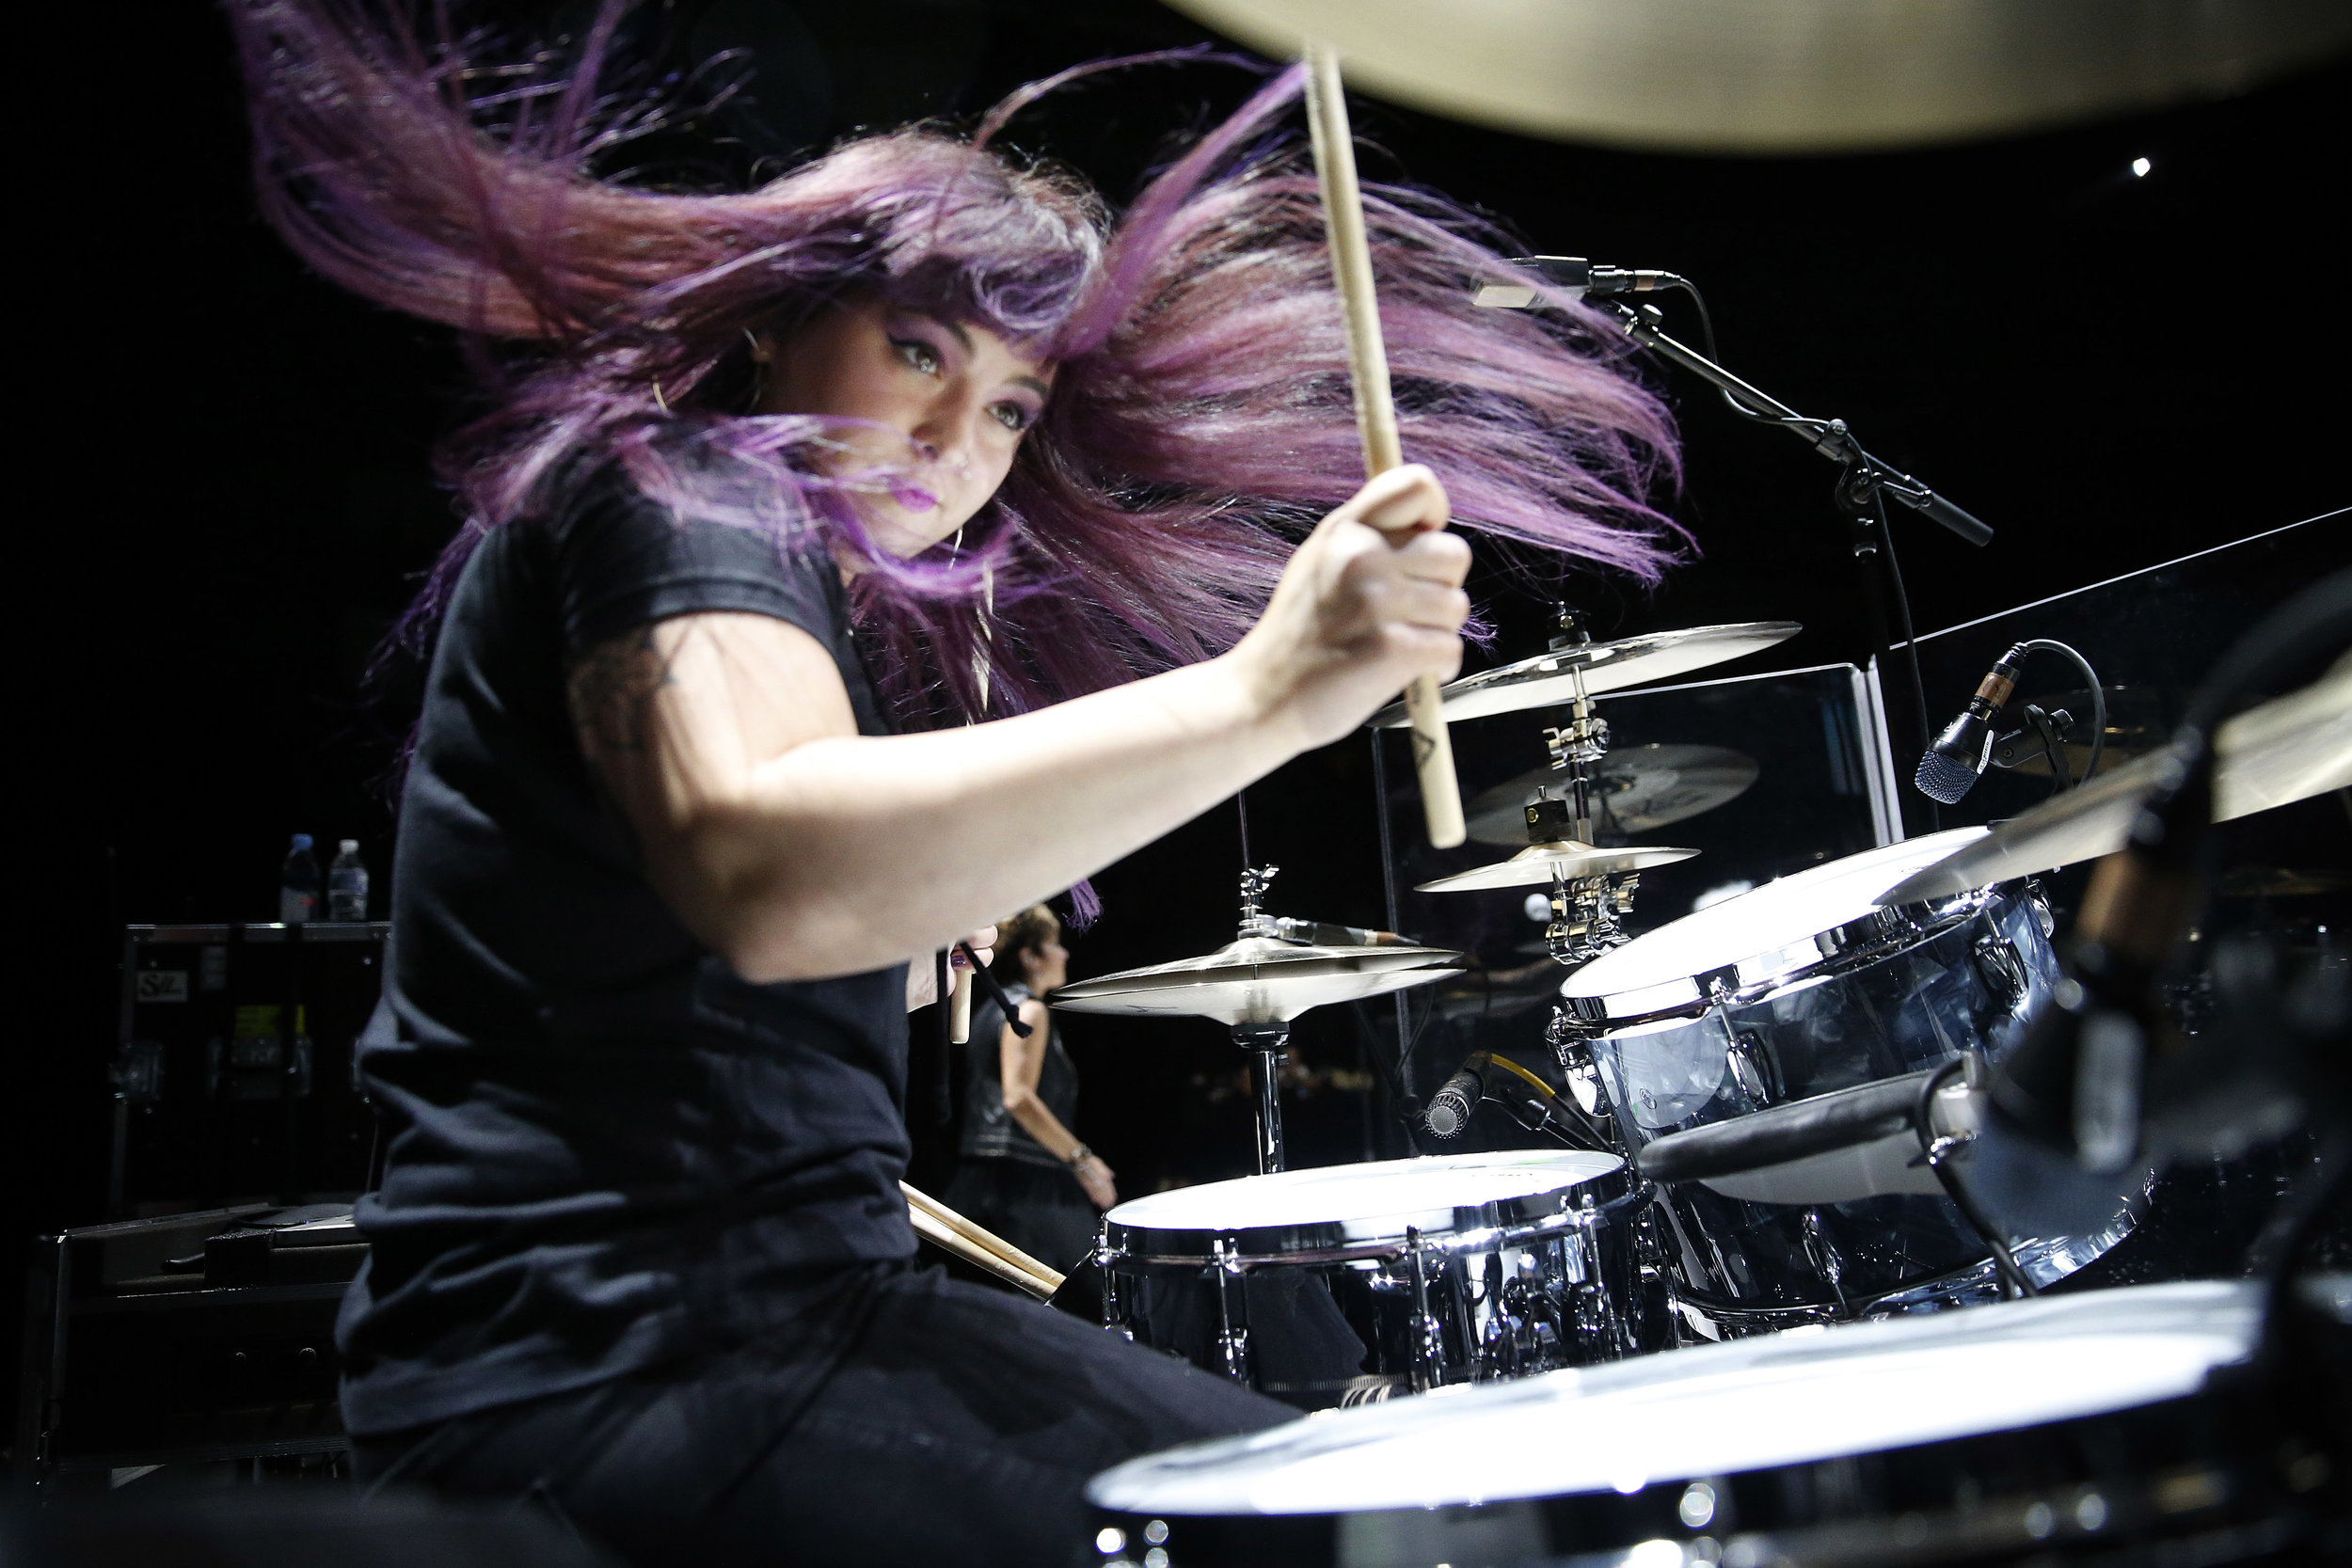 Girl plays on drums